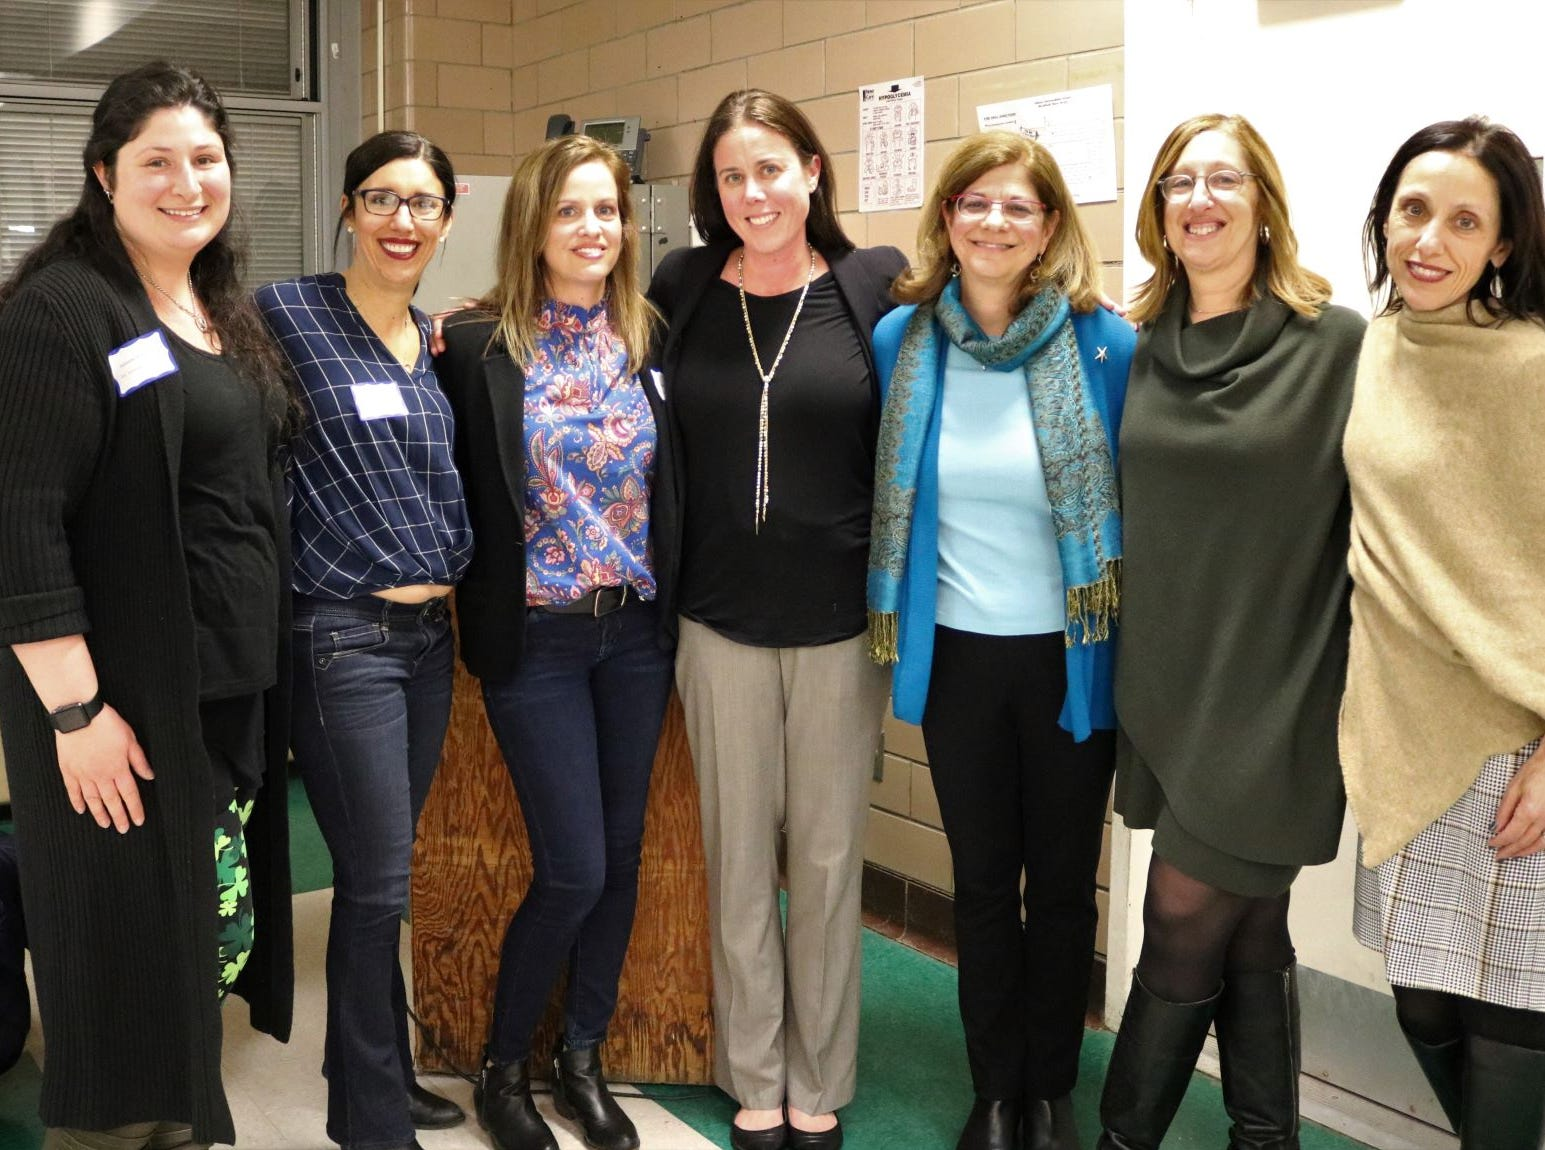 """The Westfield Parent Teacher Council Special Education Committee held its 26th Annual Awareness Expo on March 13, presenting the """"Make a Difference Award"""" to former PTC Special Education Committee Co-Chair Lisa Wendel.  Pictured here from left to right are: r) 2019 Expo Co-Chairs Suzanne Schneider and Diane Quinn, Westfield PTC - Special Education Committee Co-Chairs Amy Kolchinsky and Liz Bedner, 18th Annual Make a Difference Award recipient and former Committee Co-Chair Lisa Wendel, former Committee Co-Chair Helene Bergman, Committee Advisor Gina Totino."""